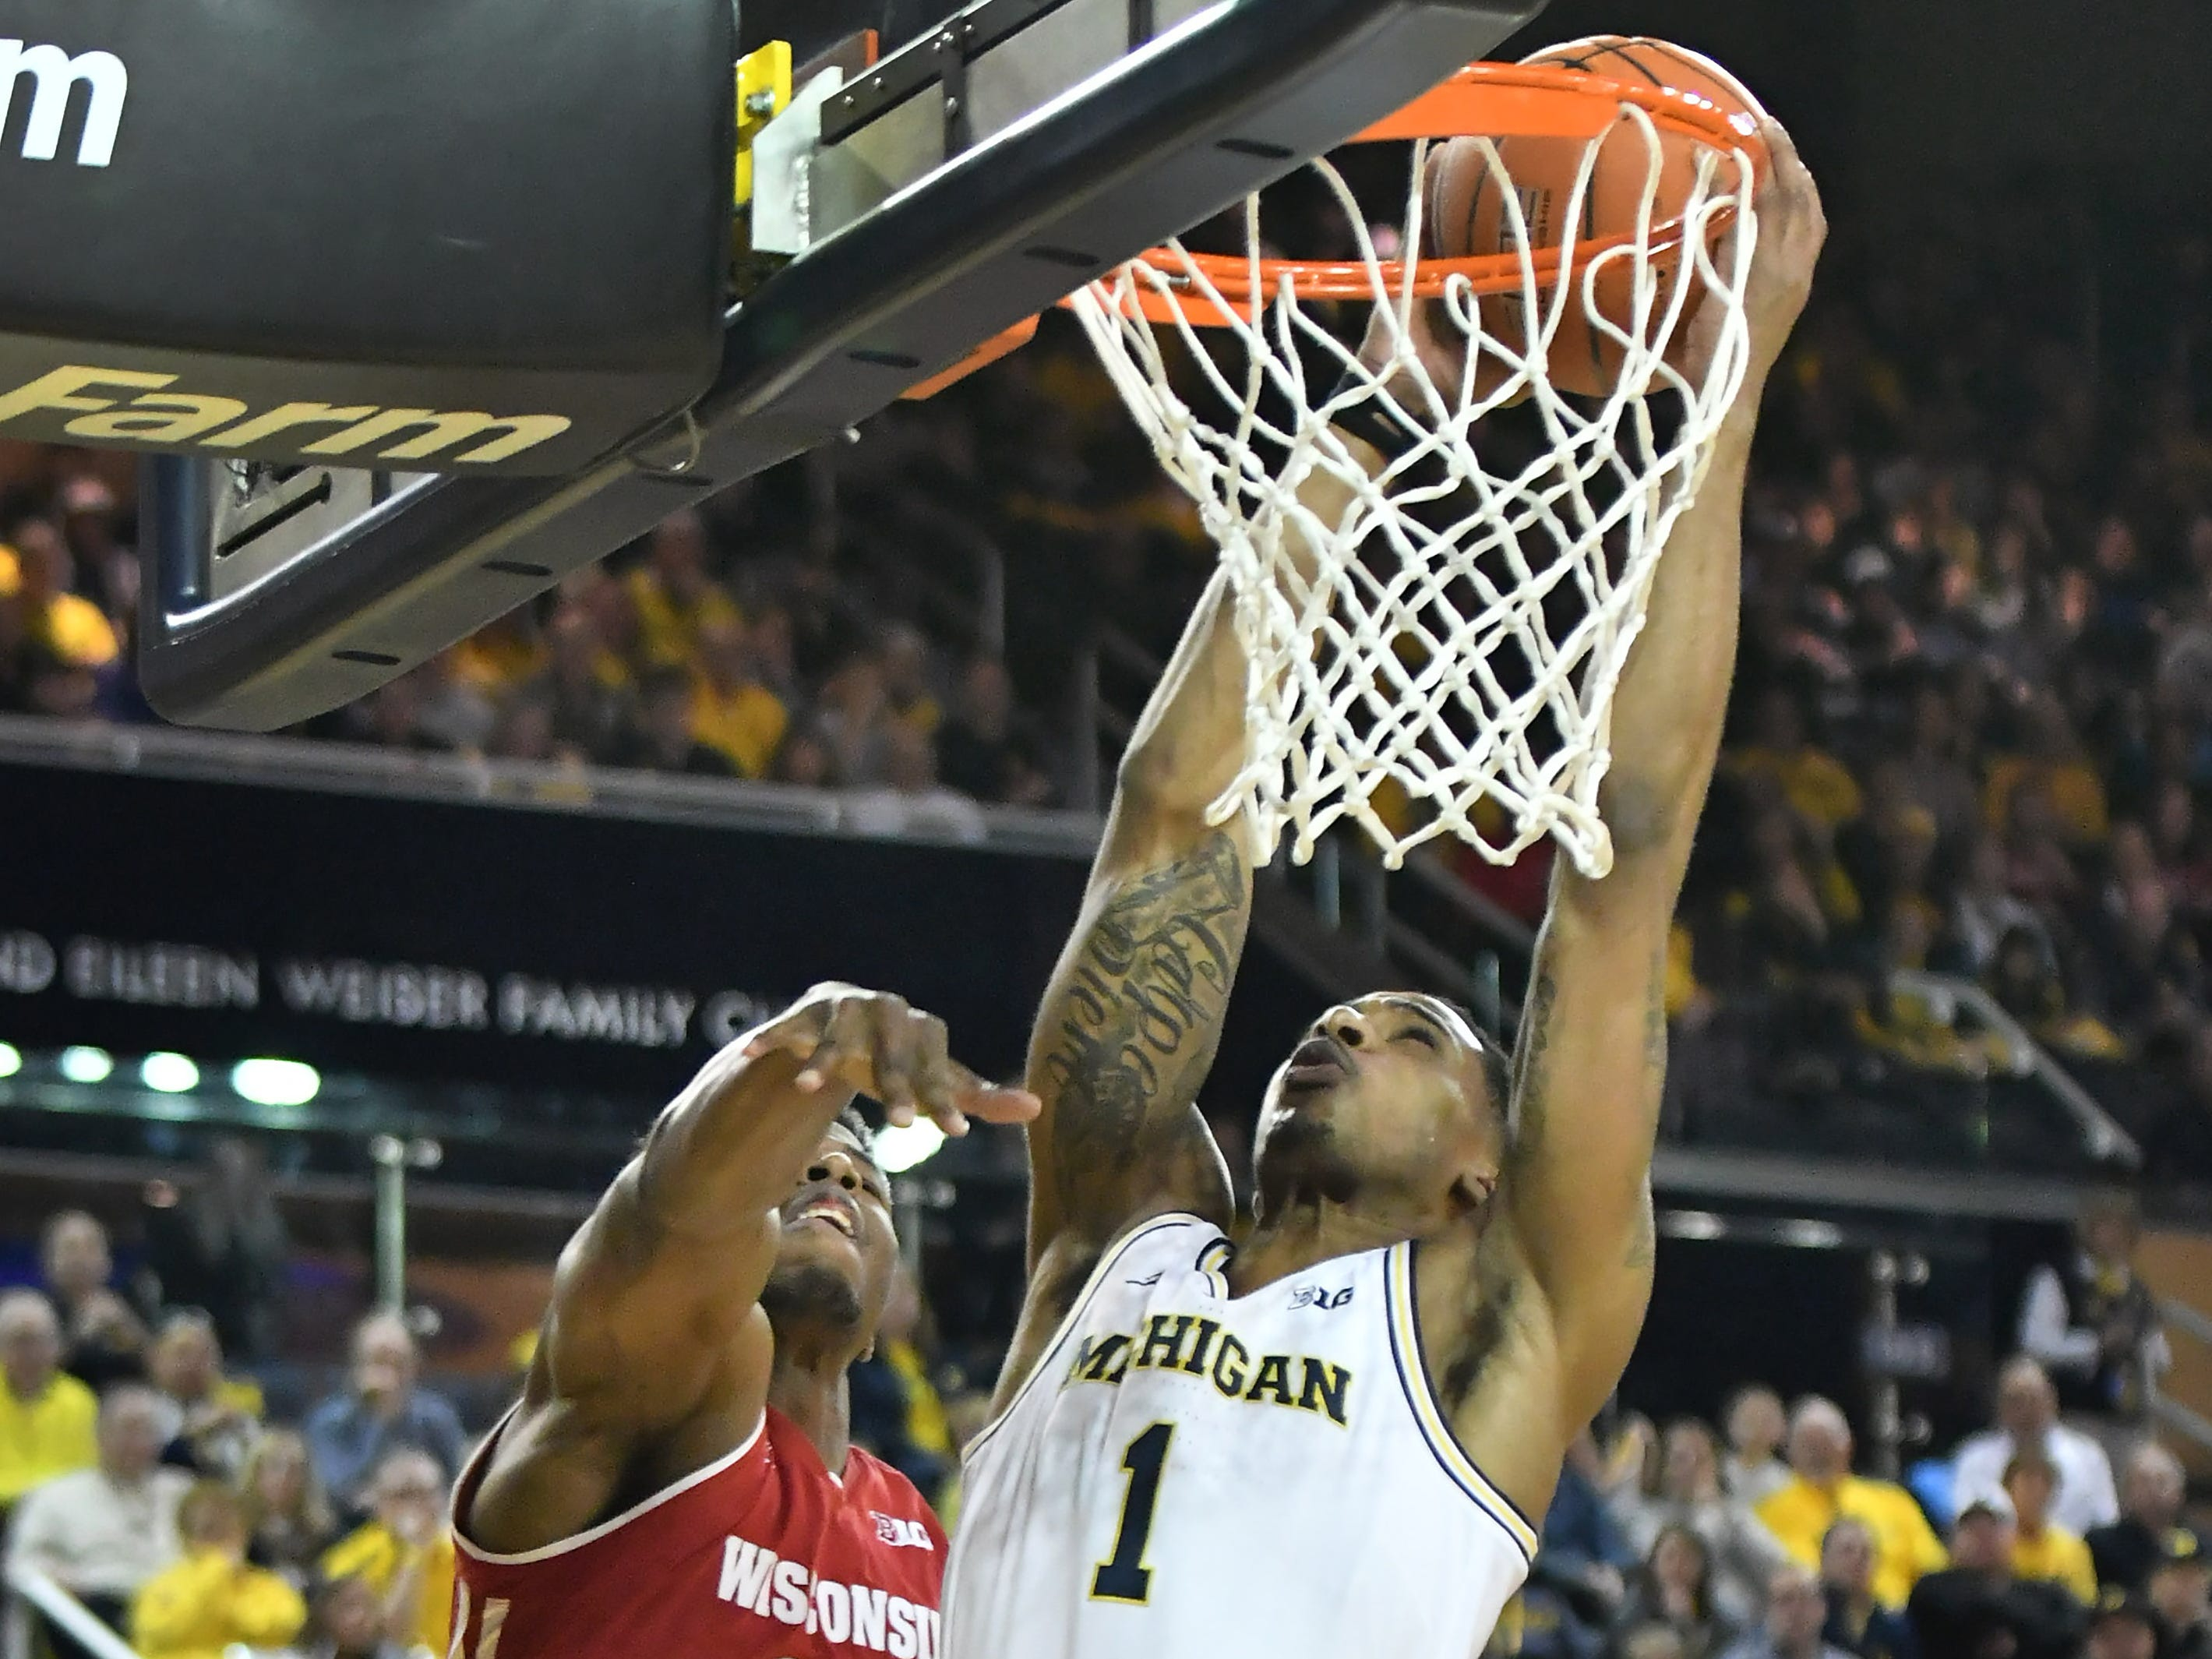 Michigan guard Charles Matthews (1) dunks over Wisconsin guard Khalil Iverson (21) in the first half.